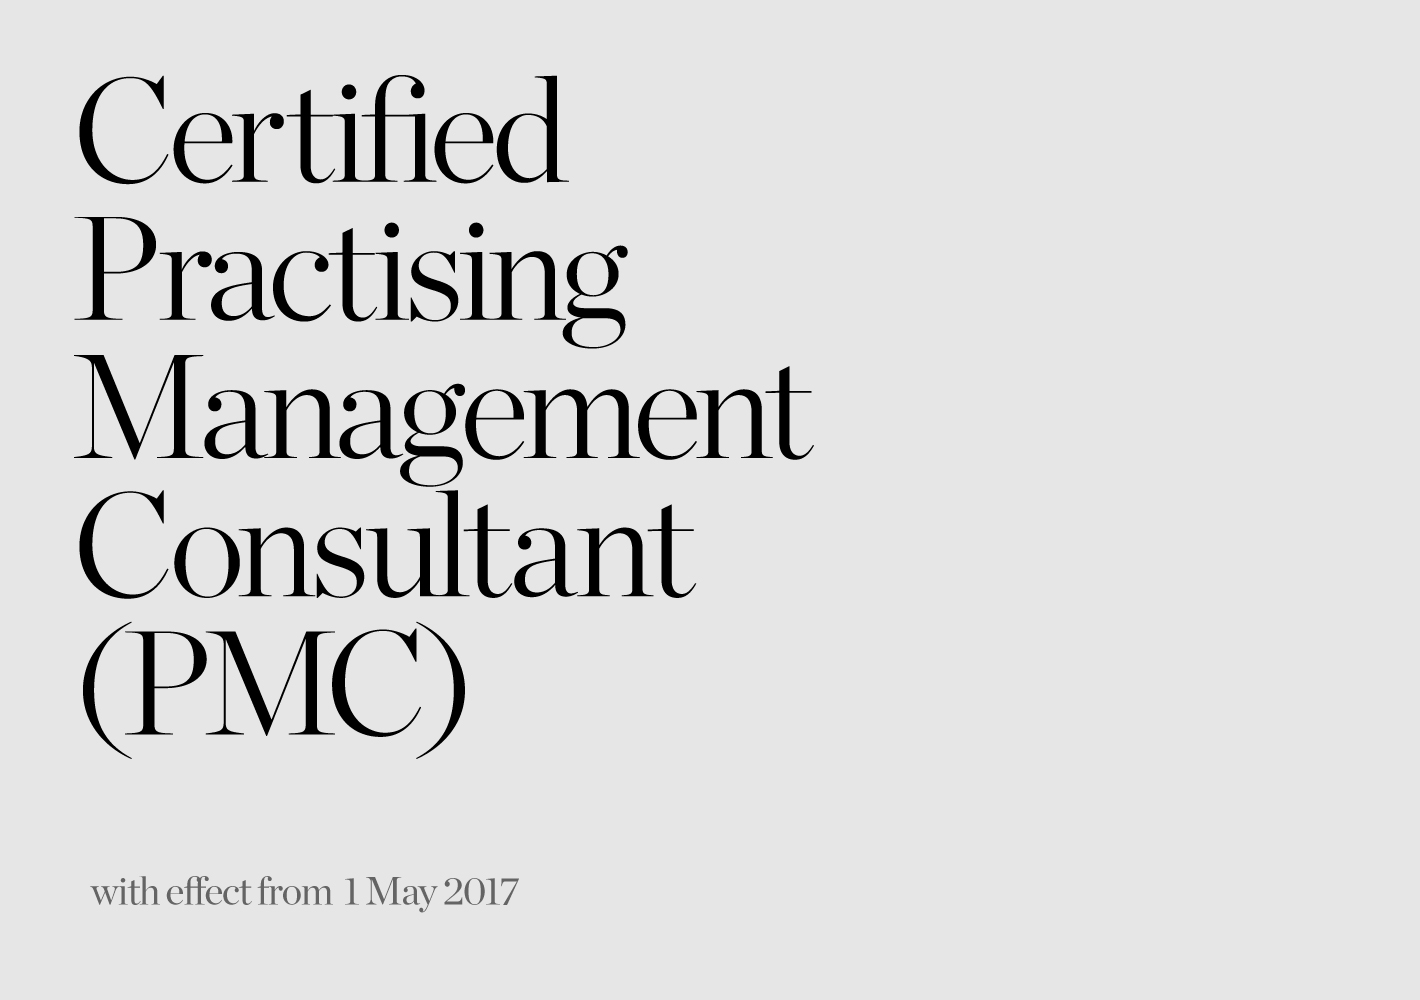 Certified Practising Management Consultant Pmc News Larry